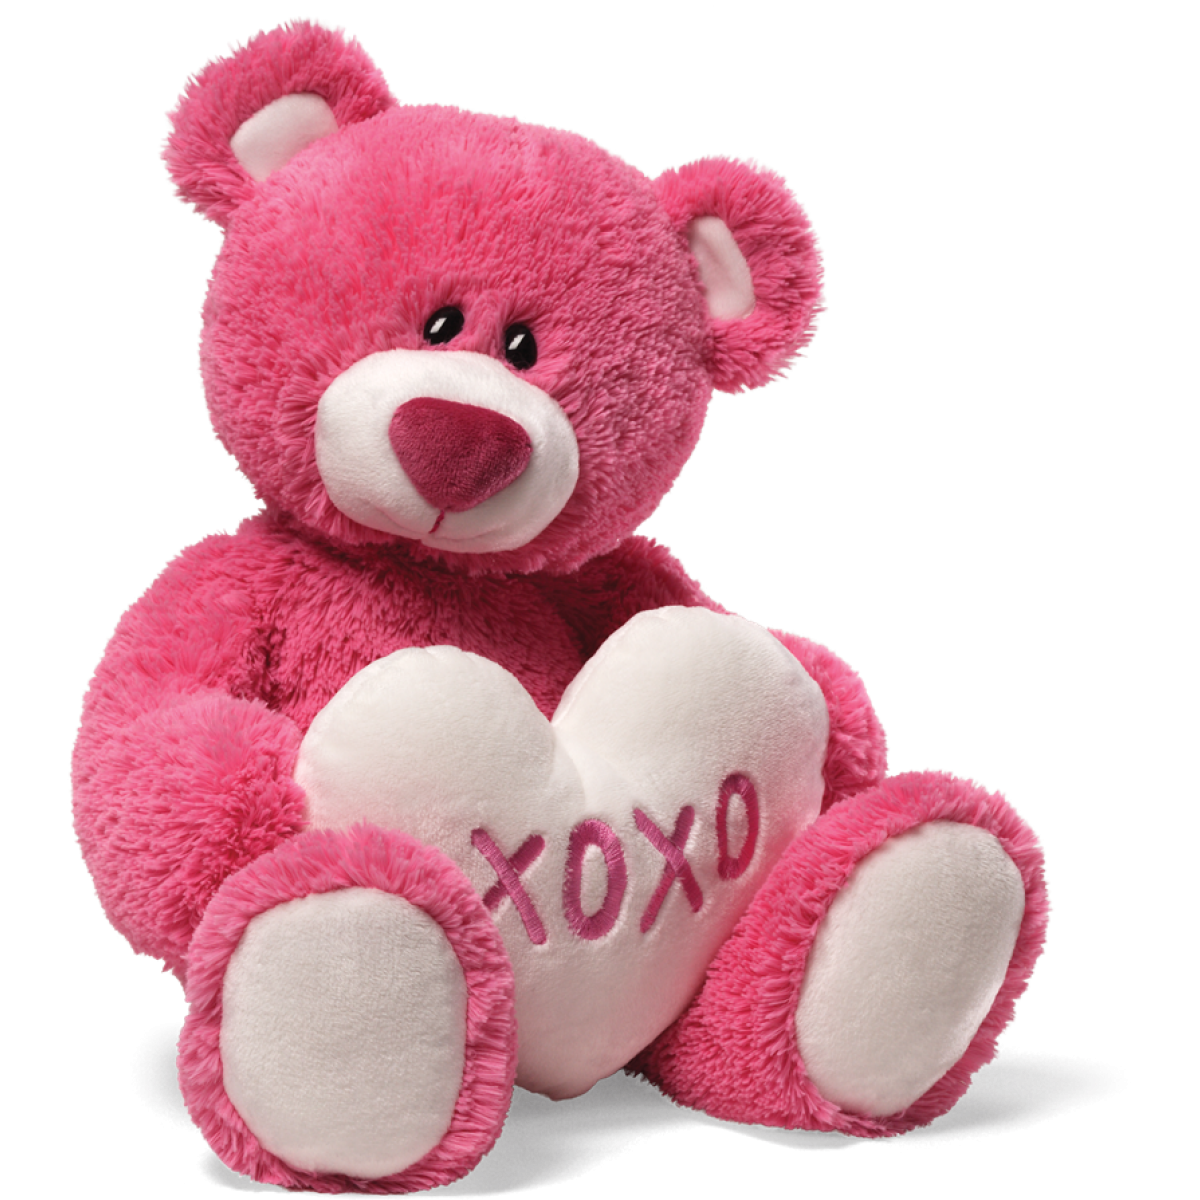 Teddy Bear Png Hd PNG Image - Teddy Bears PNG